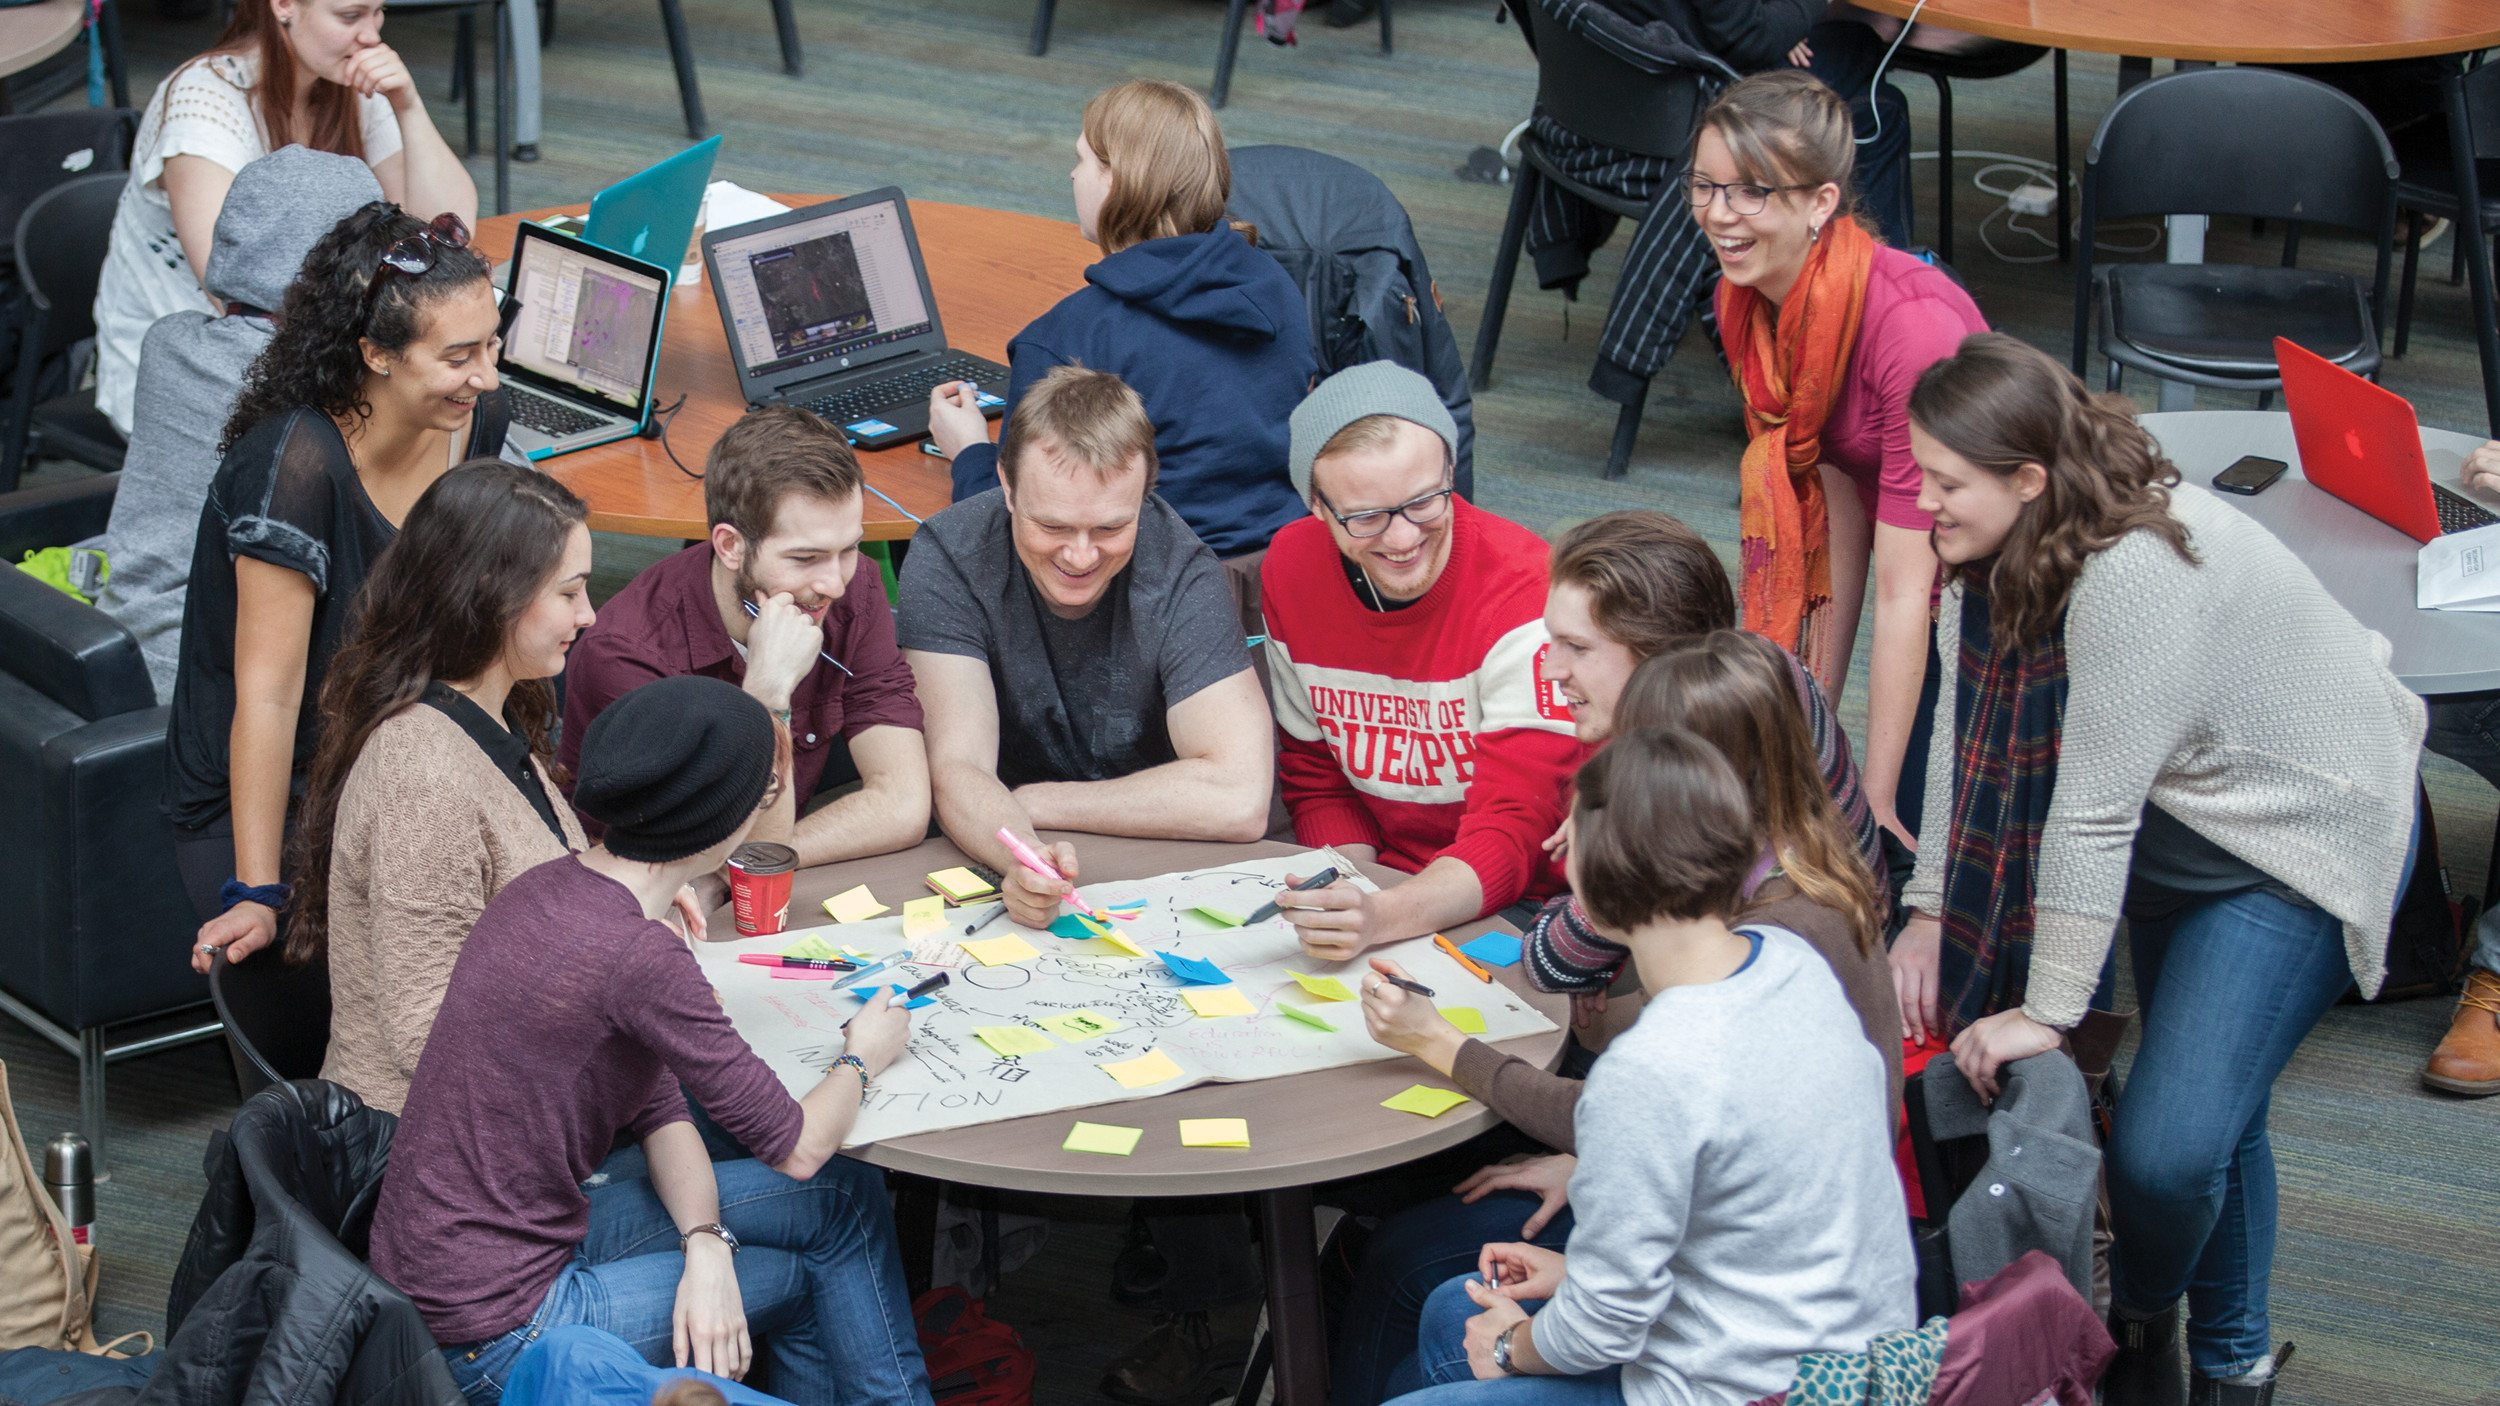 Evan Fraser and Kelly Hodgins at a table with students, looking over chart paper